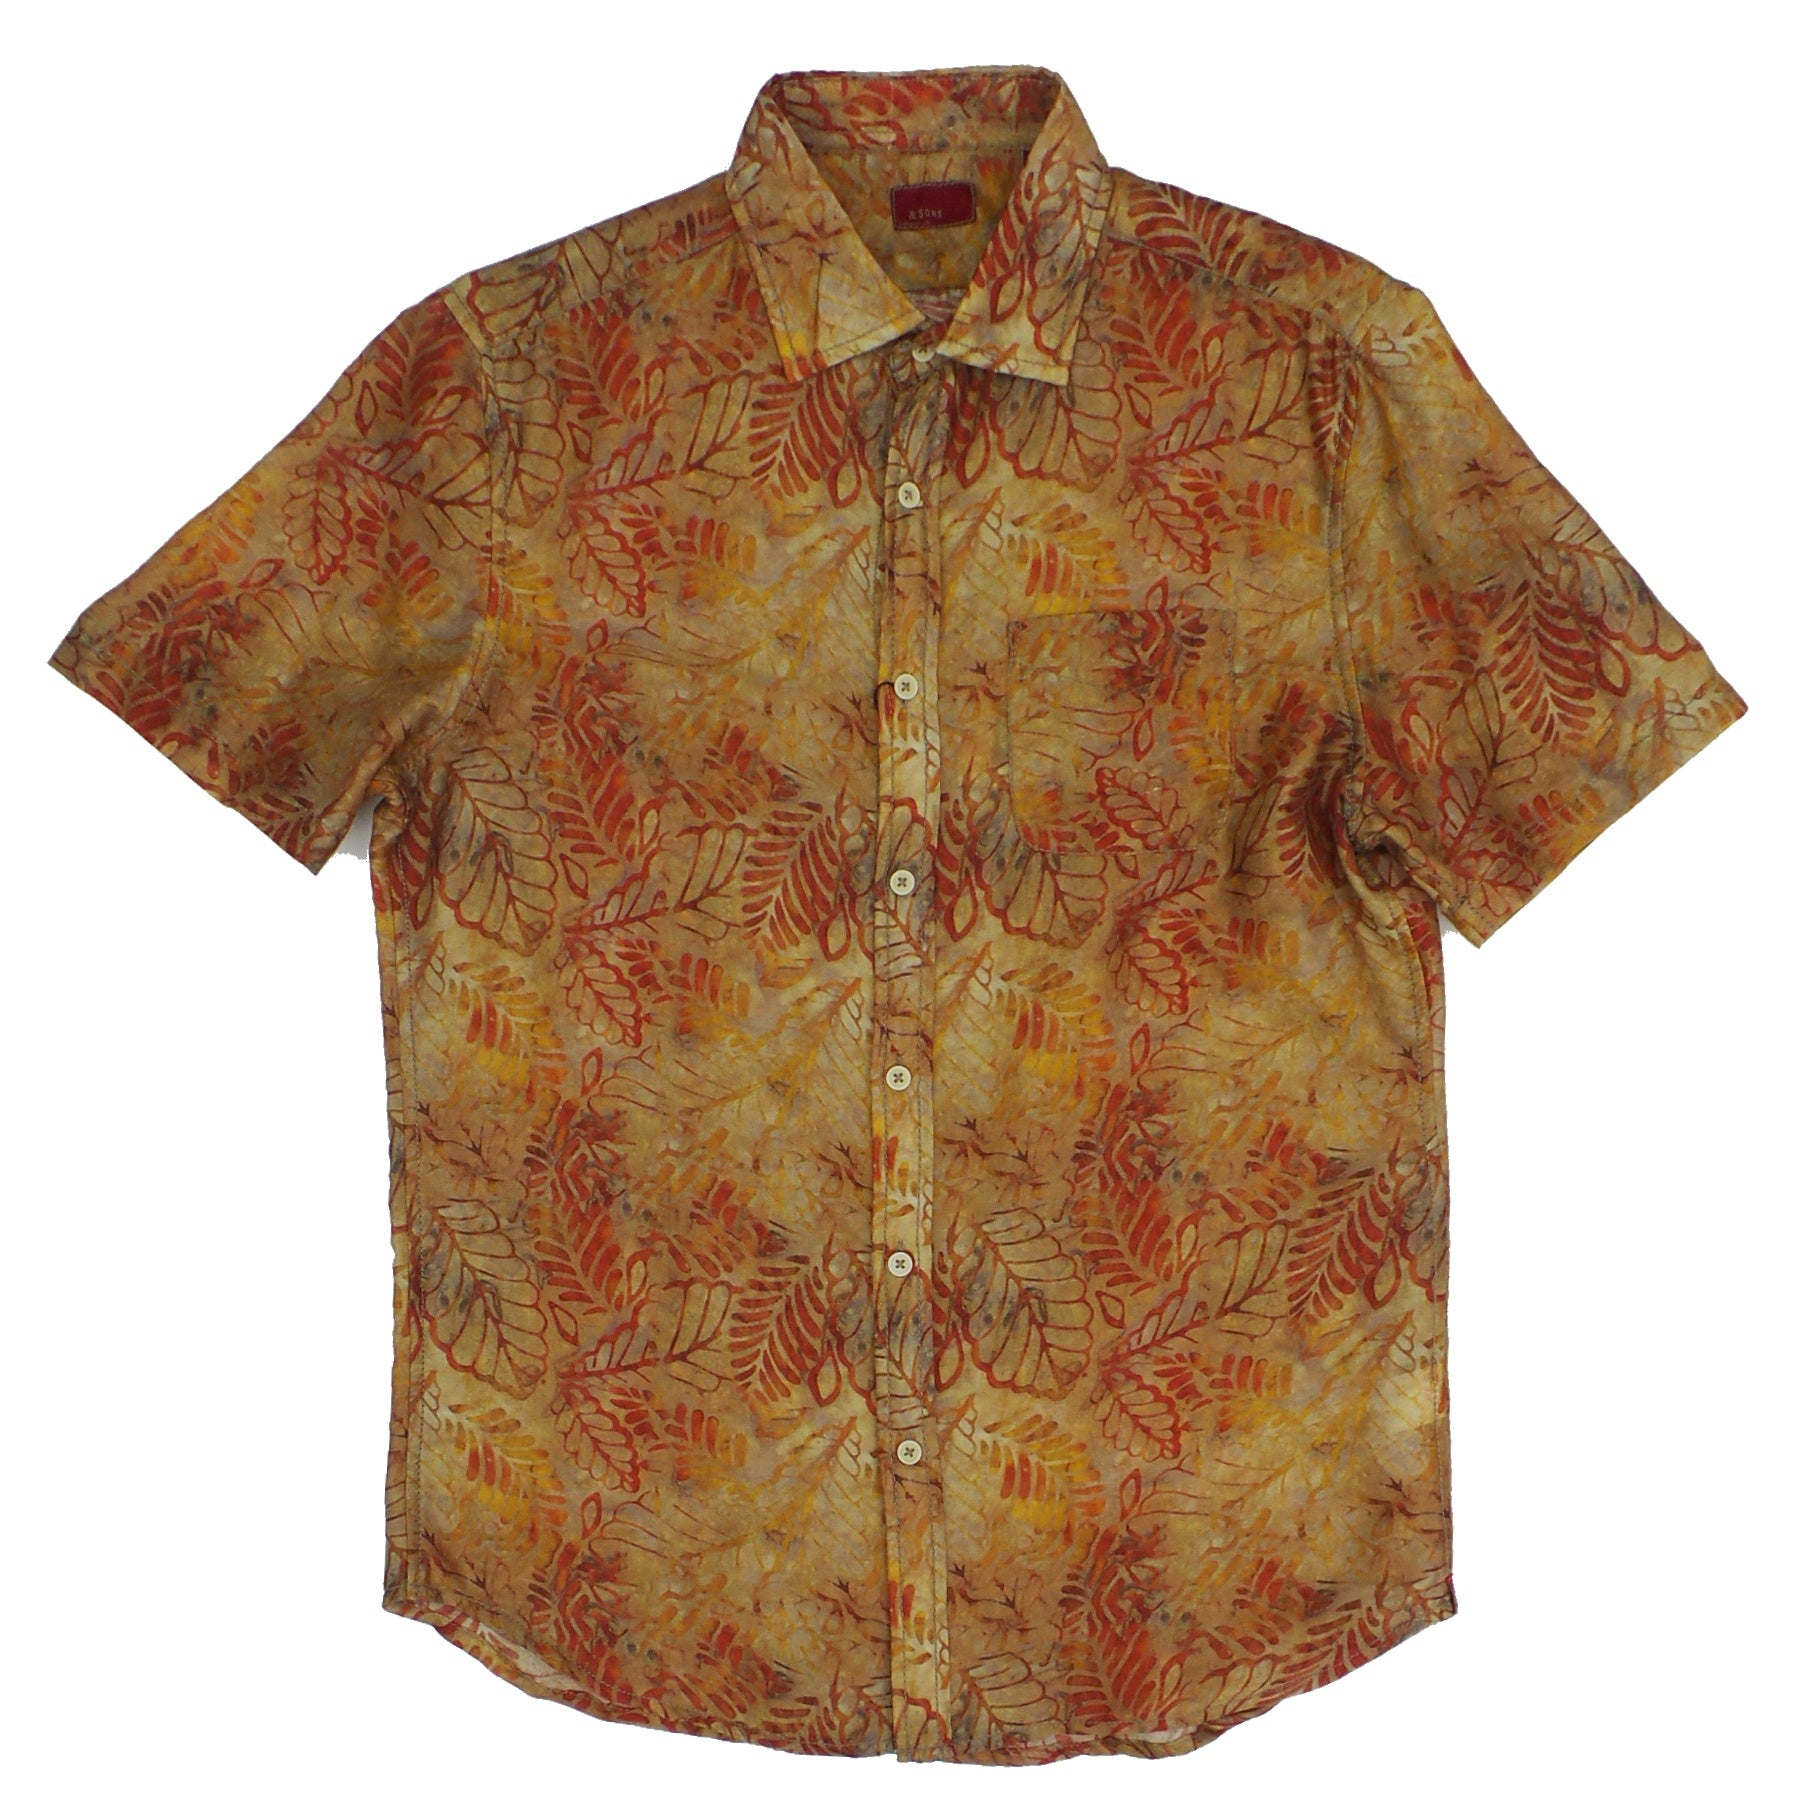 & Sons Garment Co. Voile Painted Leaves Lightweight Soft Cotton Shirt